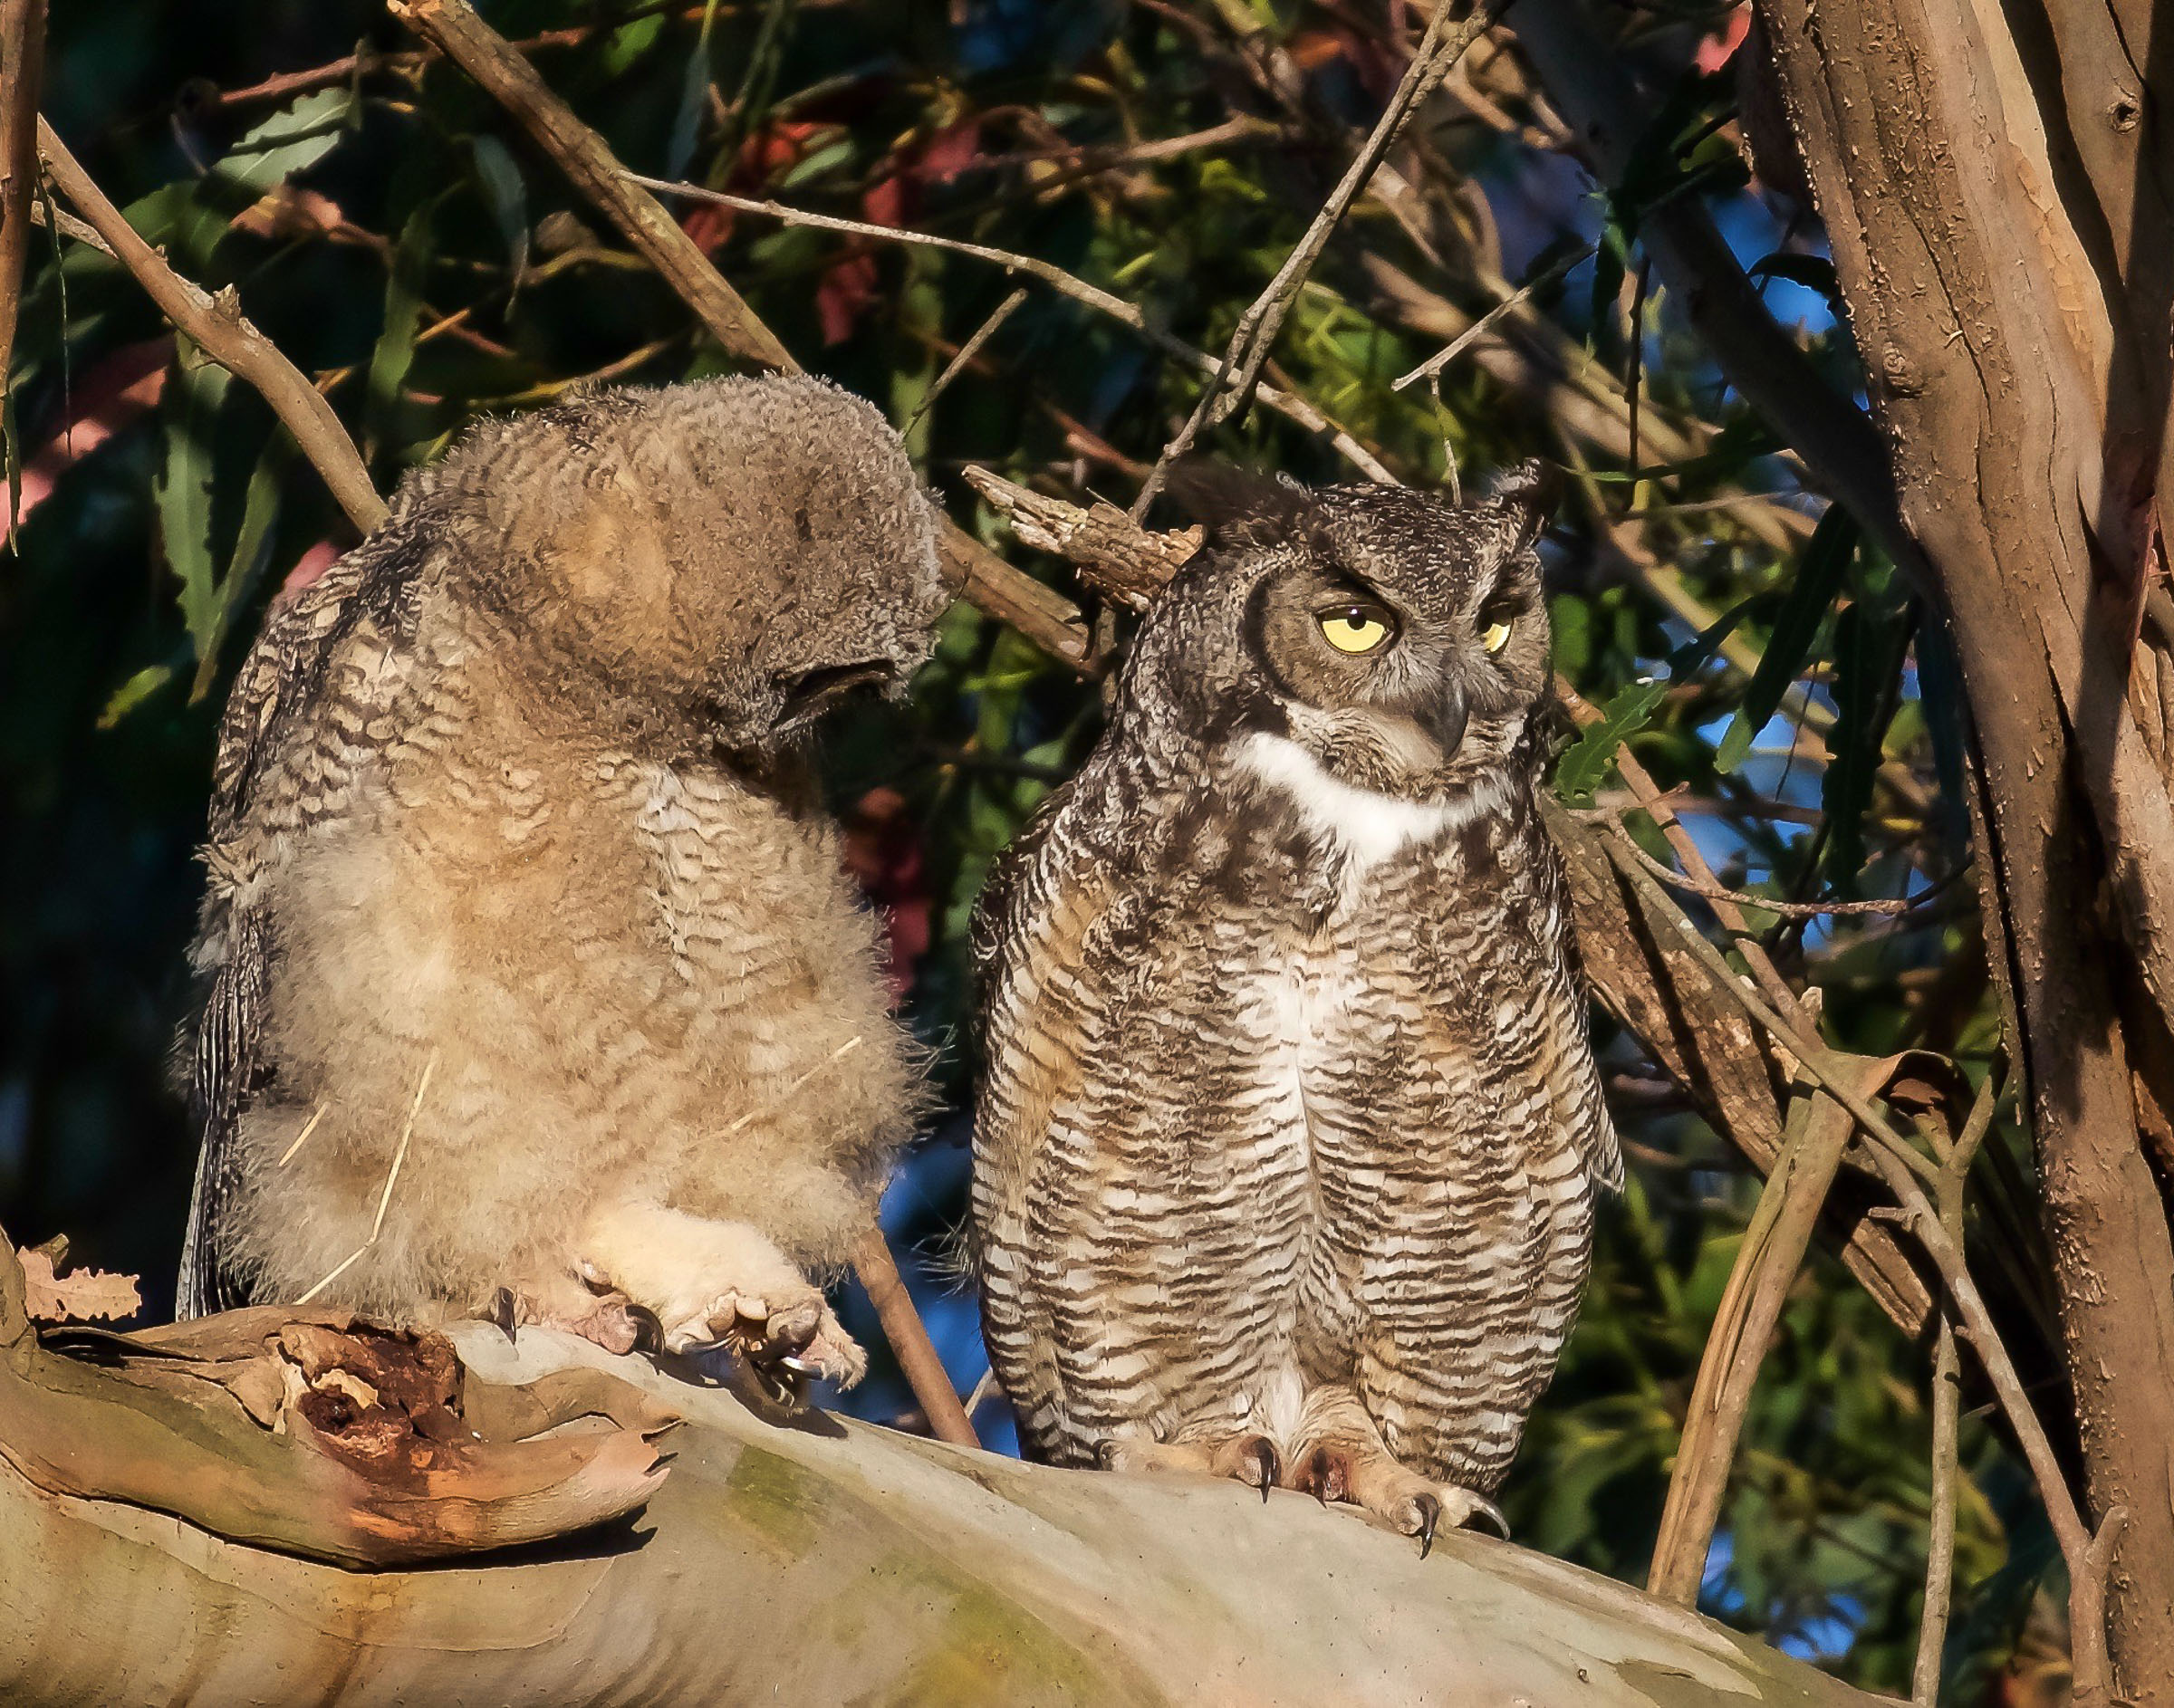 mother-owl-and-owlet-on-branch-grooming-5.jpg